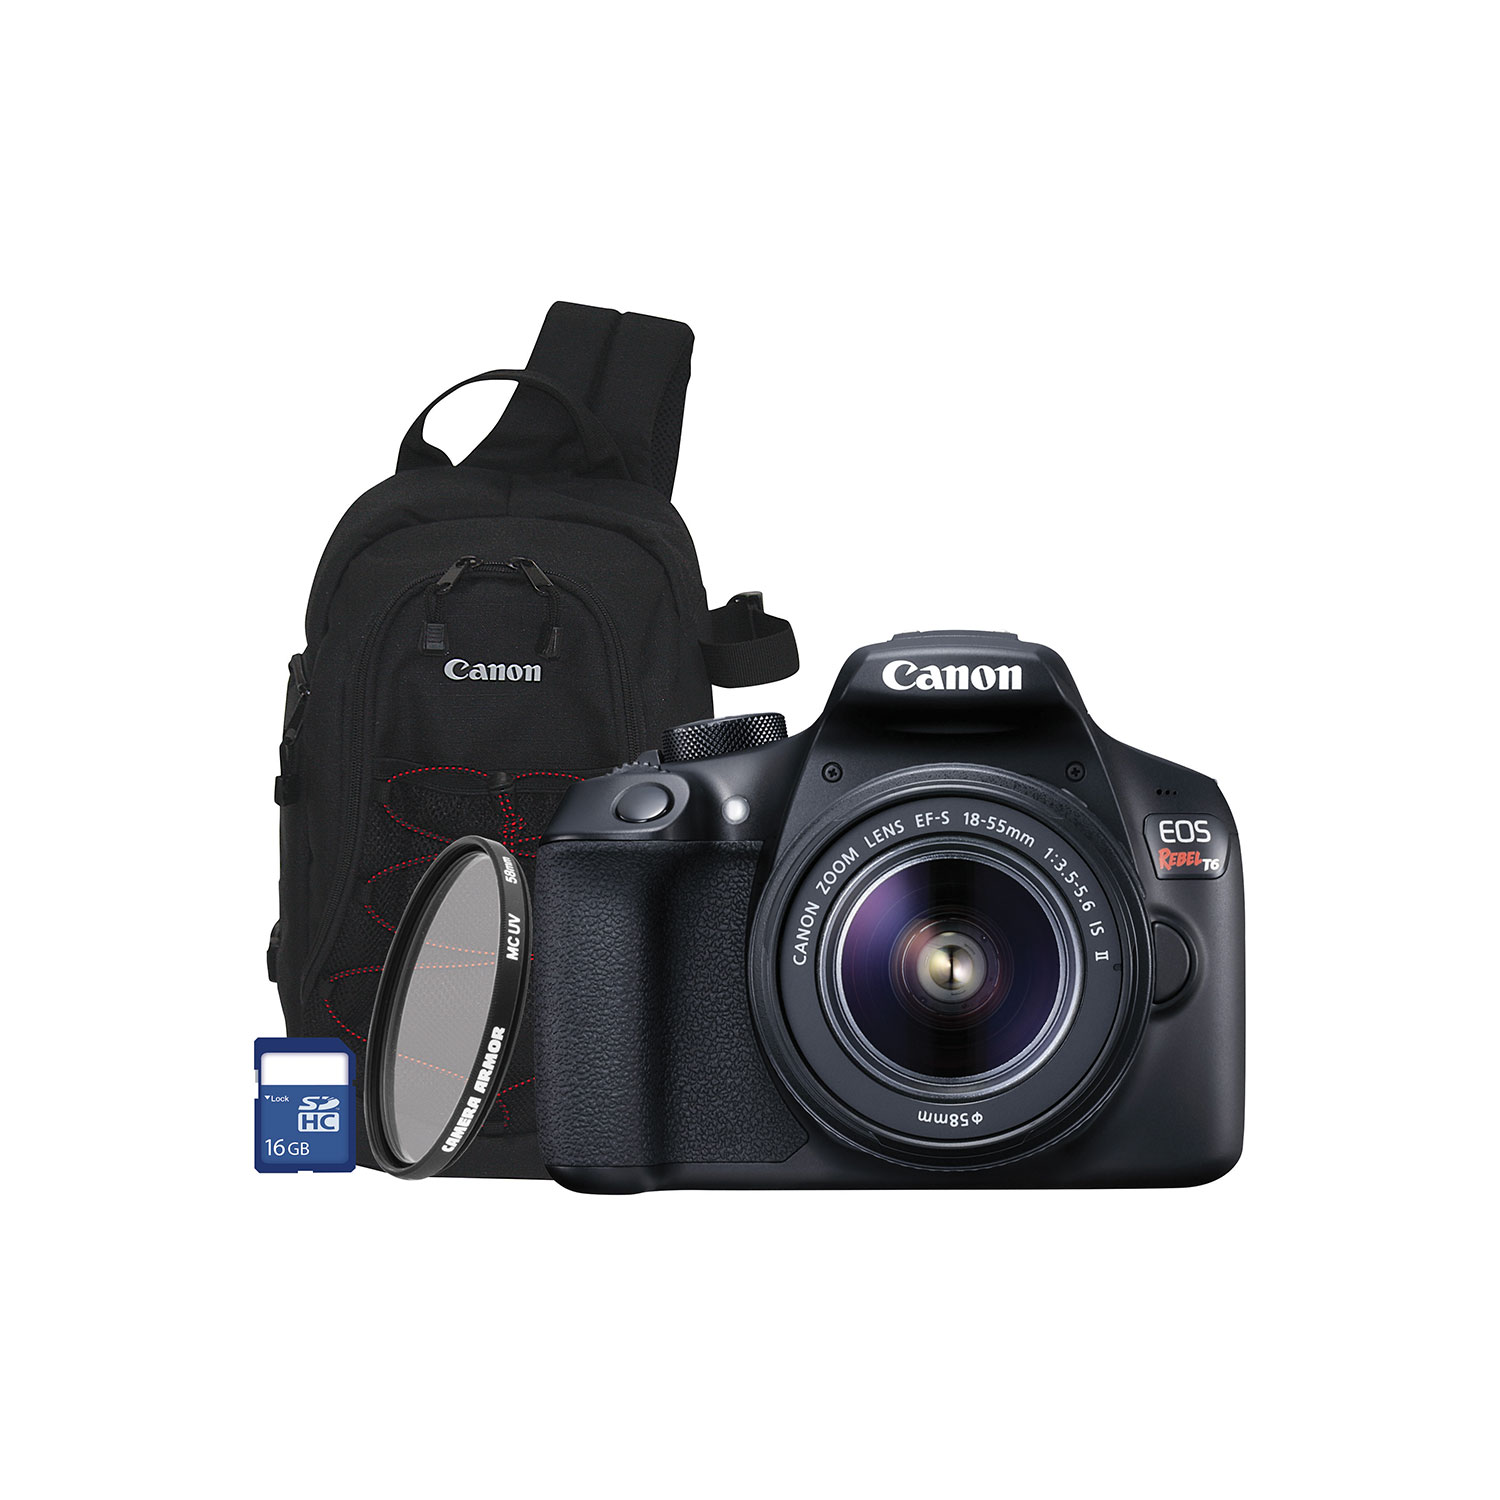 Dslr Camera Packages Best Buy Canada Canon Eos 1200d Kit 18 55mm Iii Non Is Rebel T6 With Lens Accessory